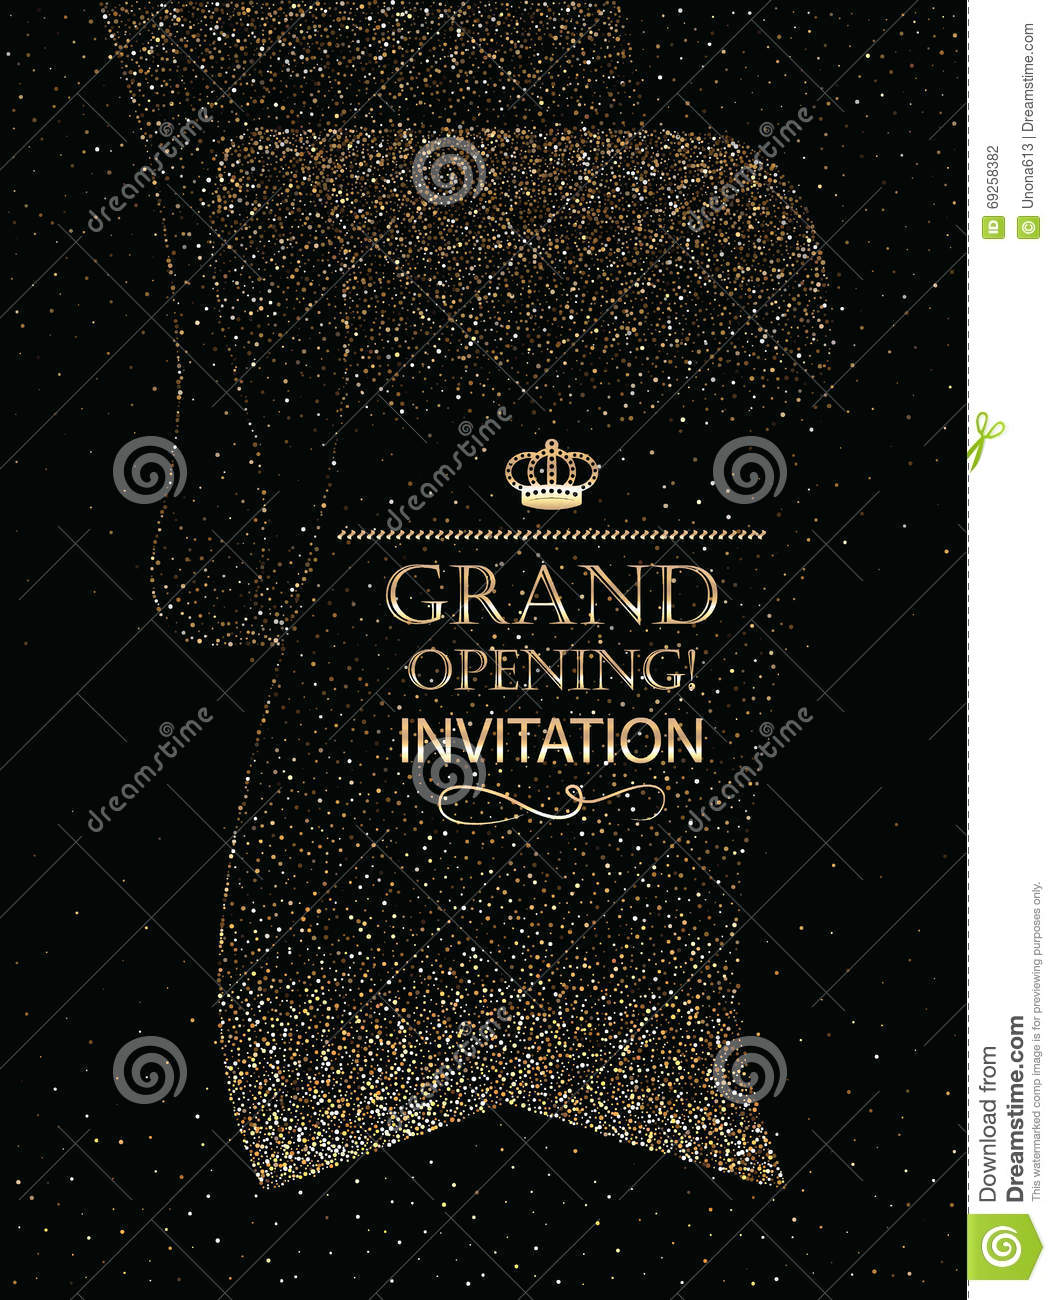 Grand Opening Invitation Card With Abstract Ribbon Vector – Grand Opening Invitation Cards